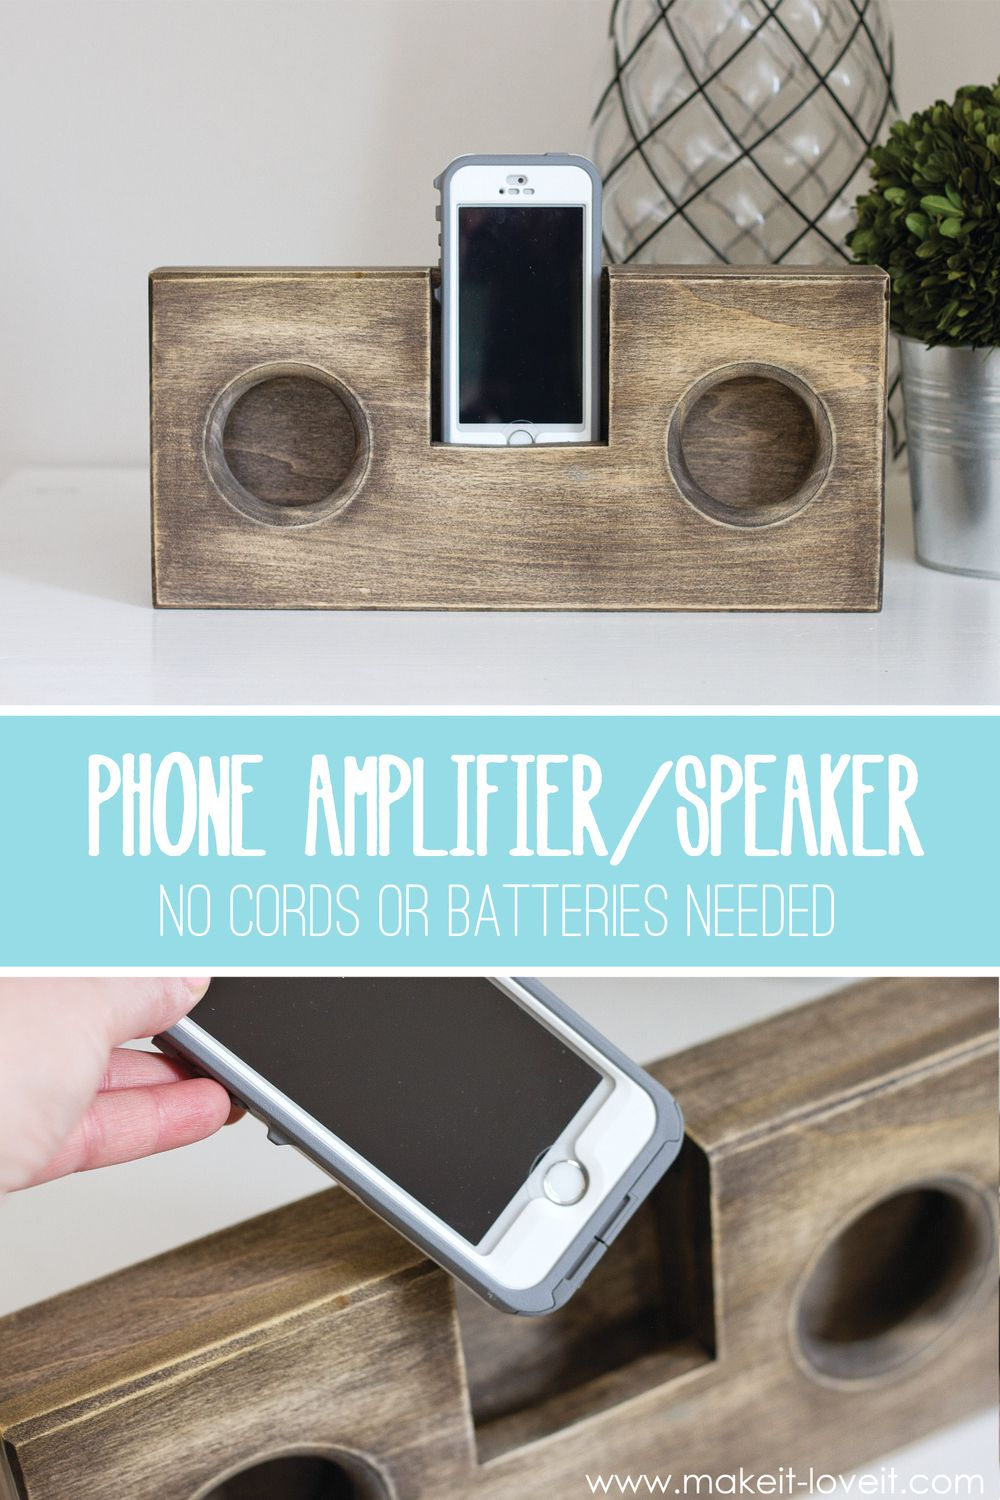 Phone service for home small business amp - Diy Wooden Phone Amplifier Speaker No Cord Or Batteries Needed Via Make